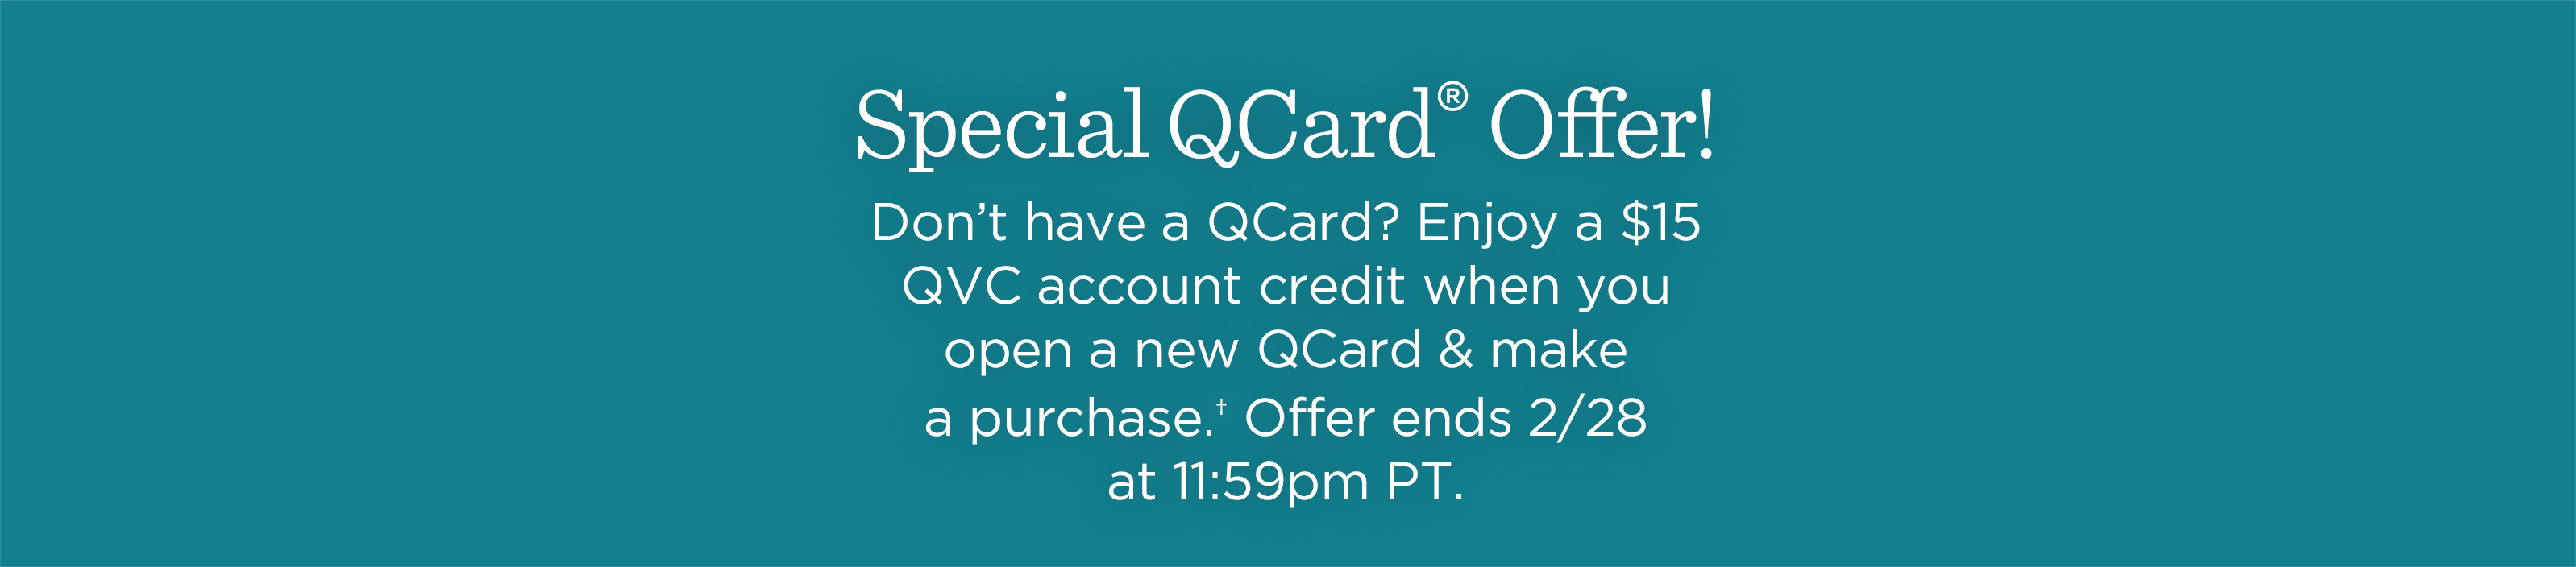 Special QCard® Offer Don't have a QCard? Enjoy a $15 QVC account credit when you open a new QCard & make a purchase.† Offer ends 2/28 at 11:59pm PT.